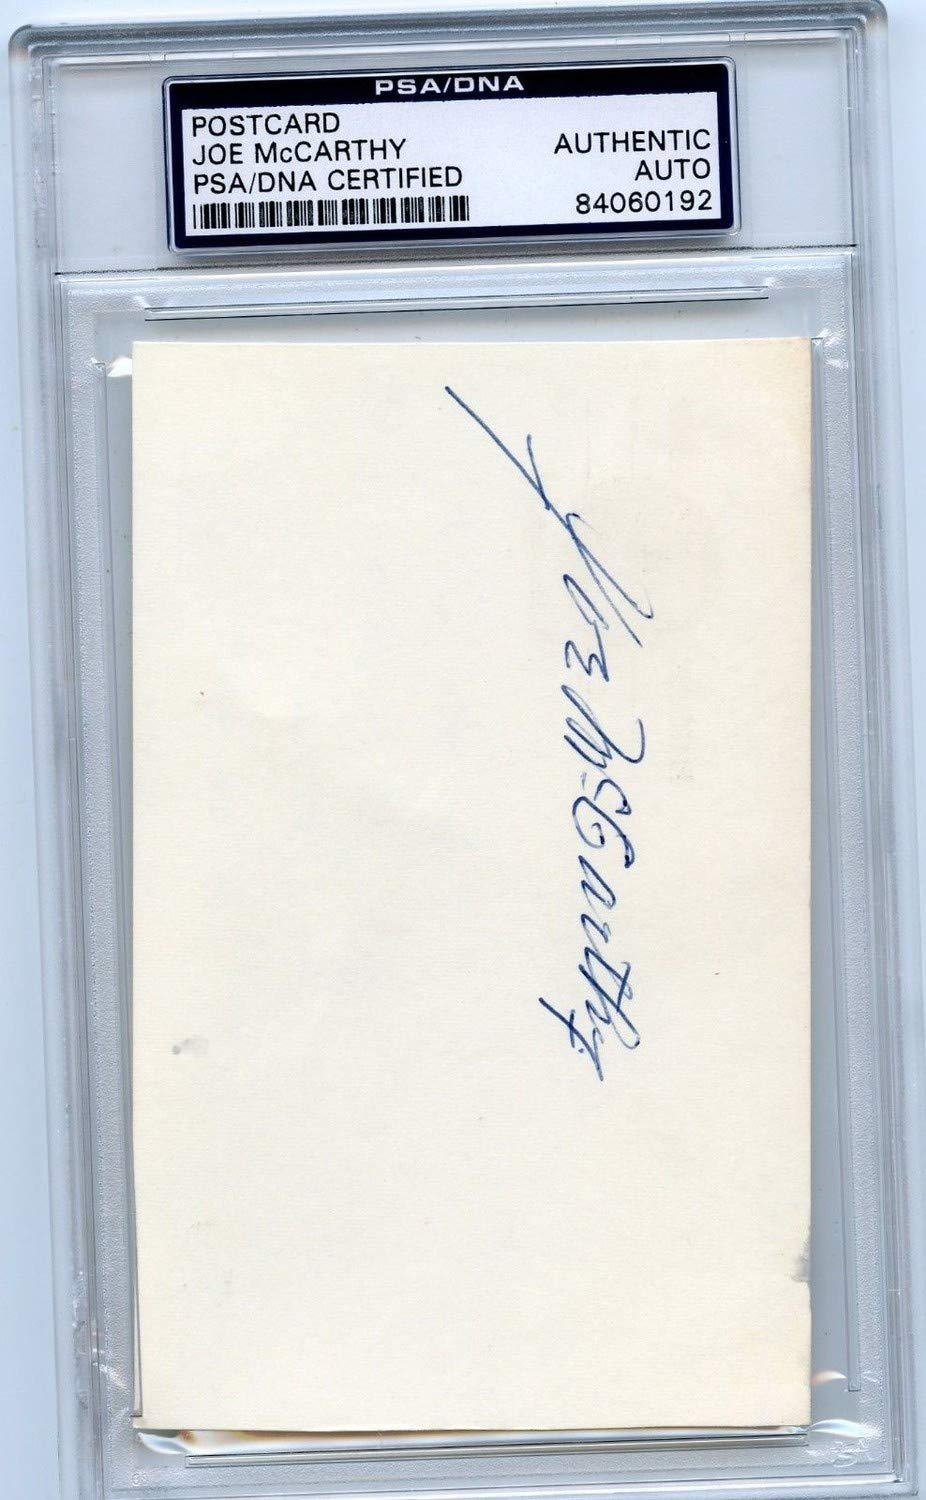 Joe Mccarthy Autographed Signed Postcard N.Y. Yankees HOF PSA/DNA Authentic 013118